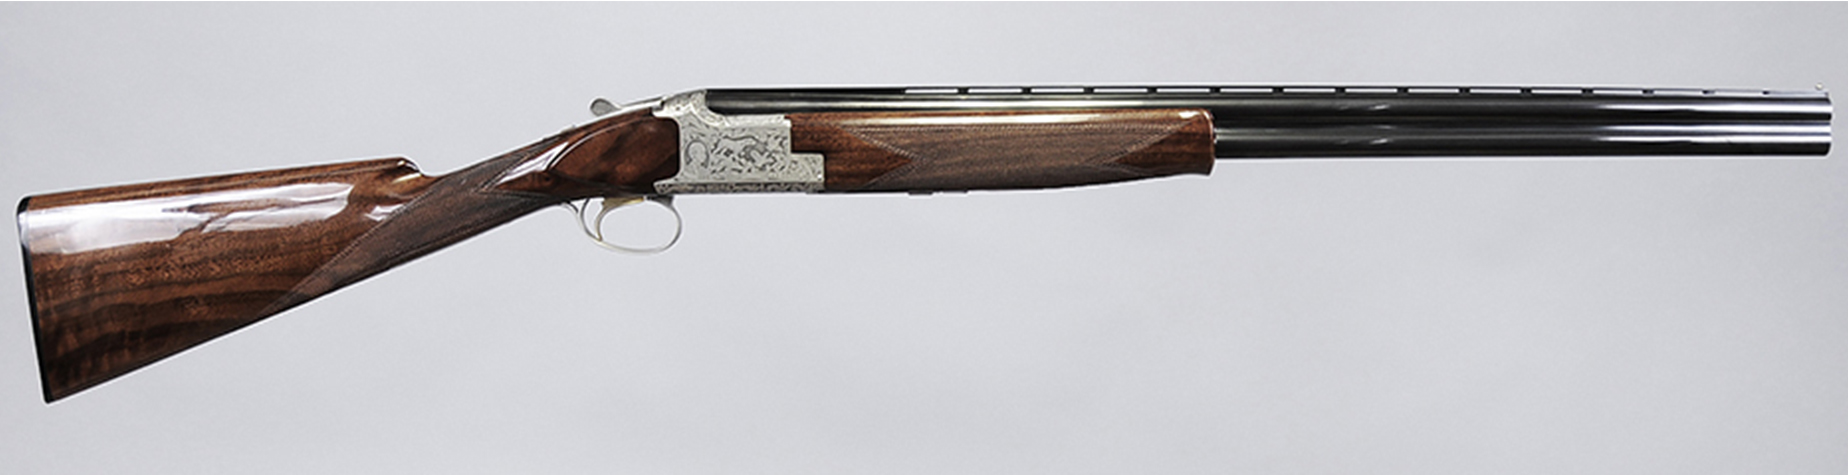 Browning Superposed Classic - Sold for $3,840